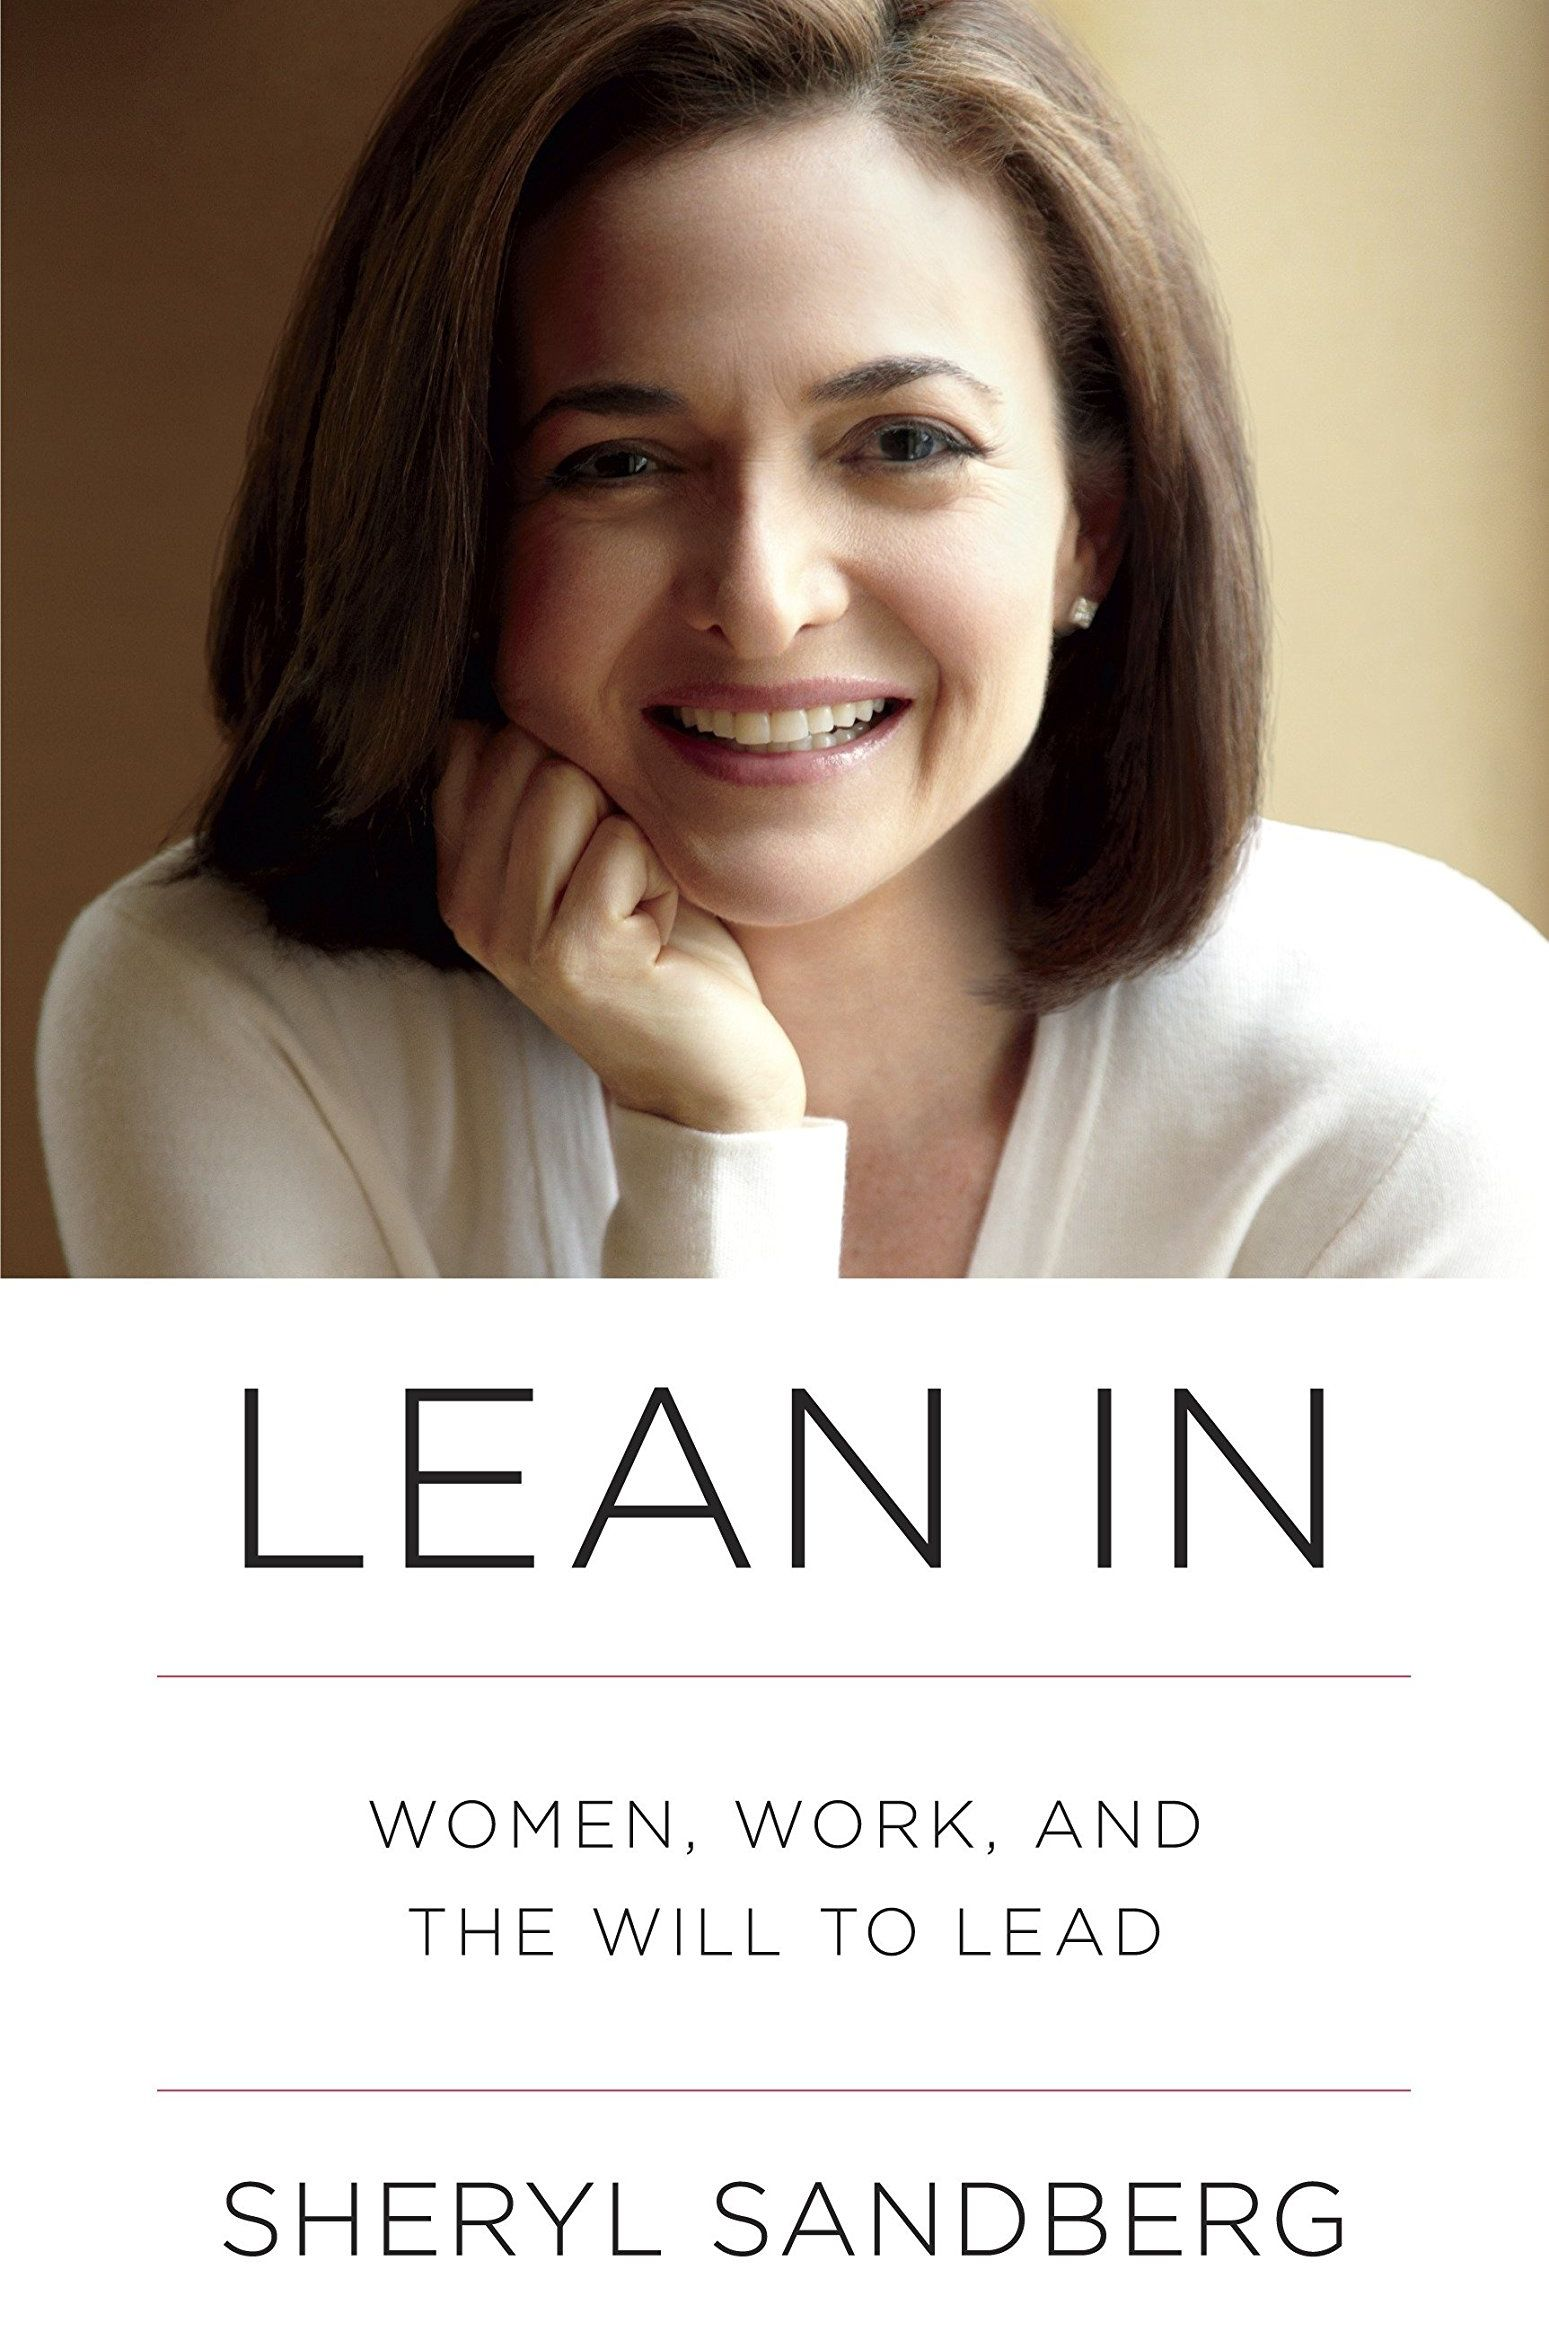 'Lean In: Women, Work, and the Will to Lead' by Sheryl Sandberg